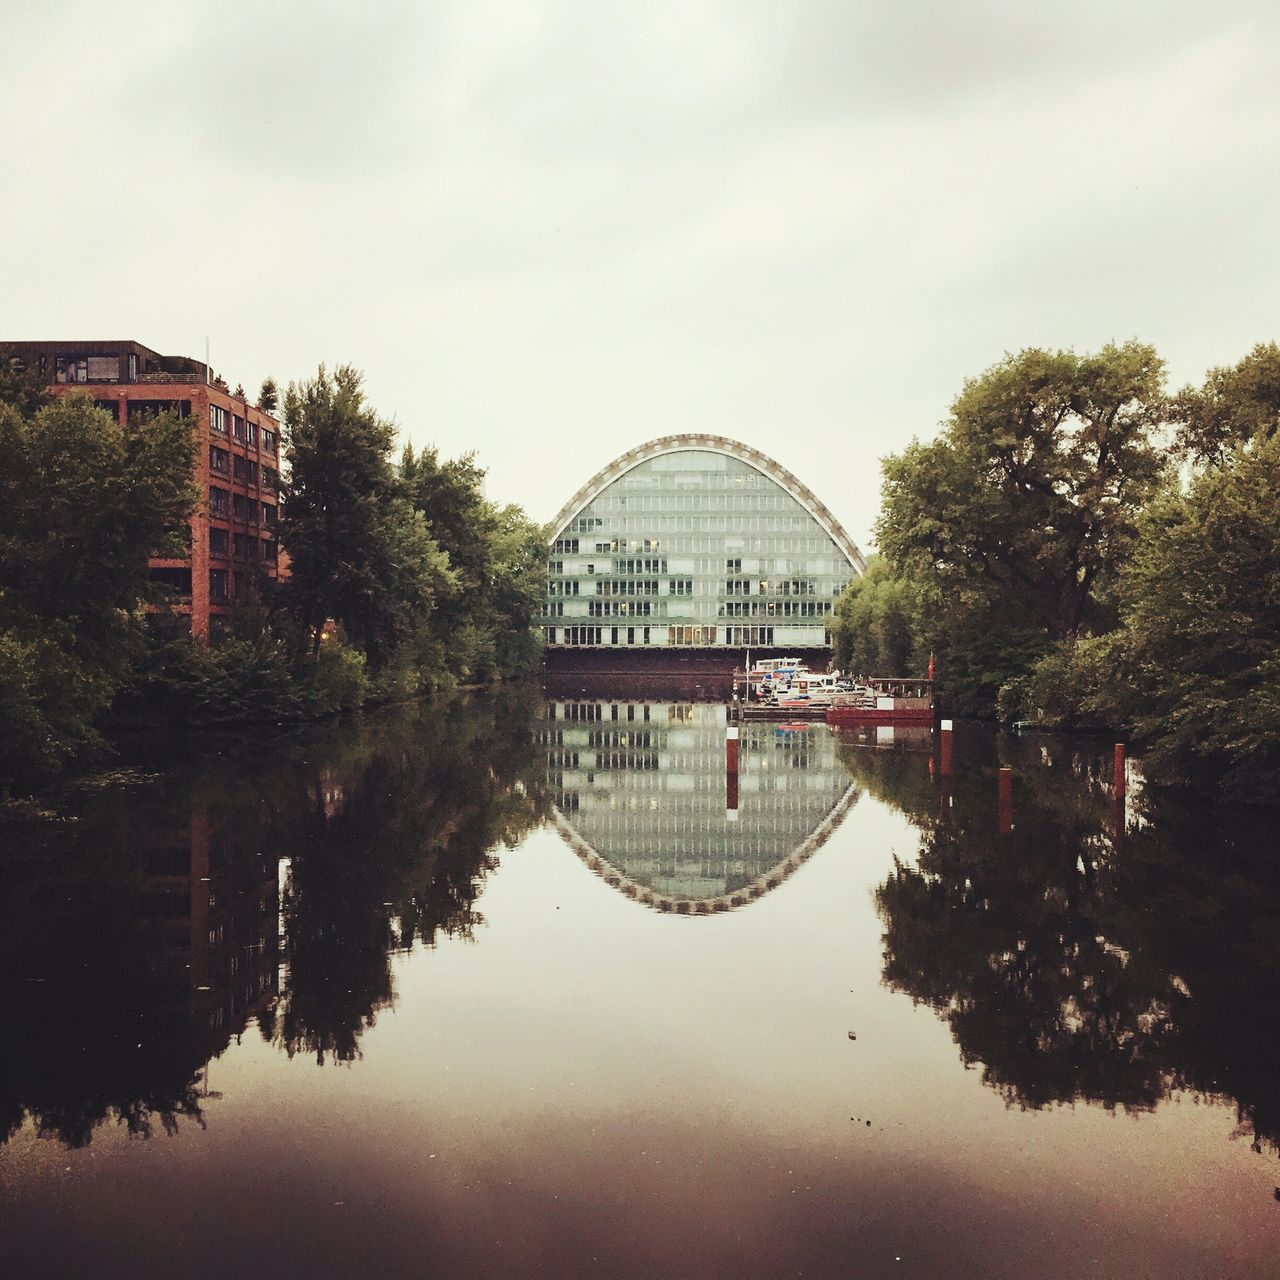 reflection, architecture, built structure, water, tree, building exterior, sky, city, no people, day, symmetry, outdoors, nature, cityscape